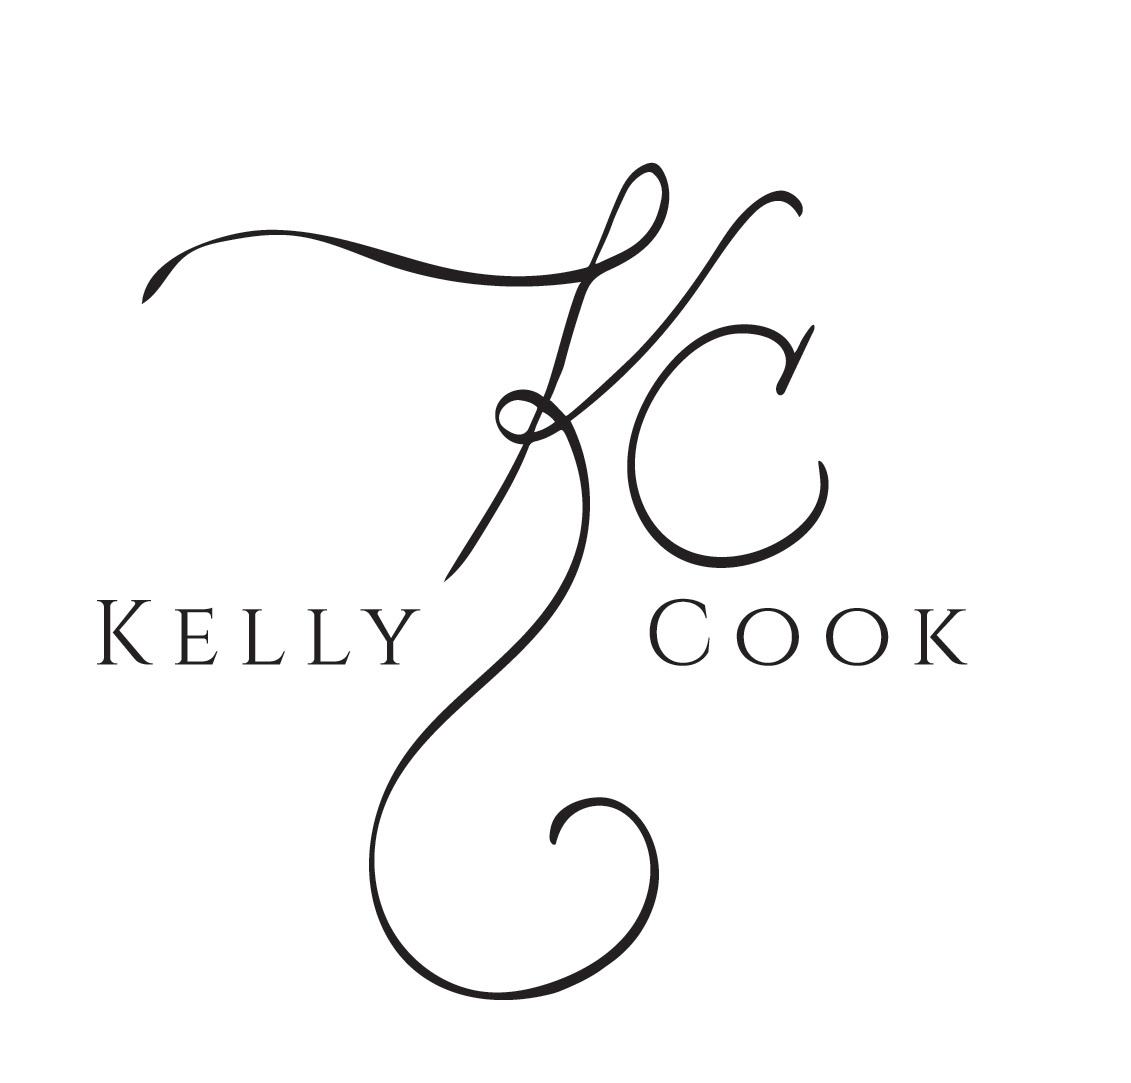 Kelly Cook